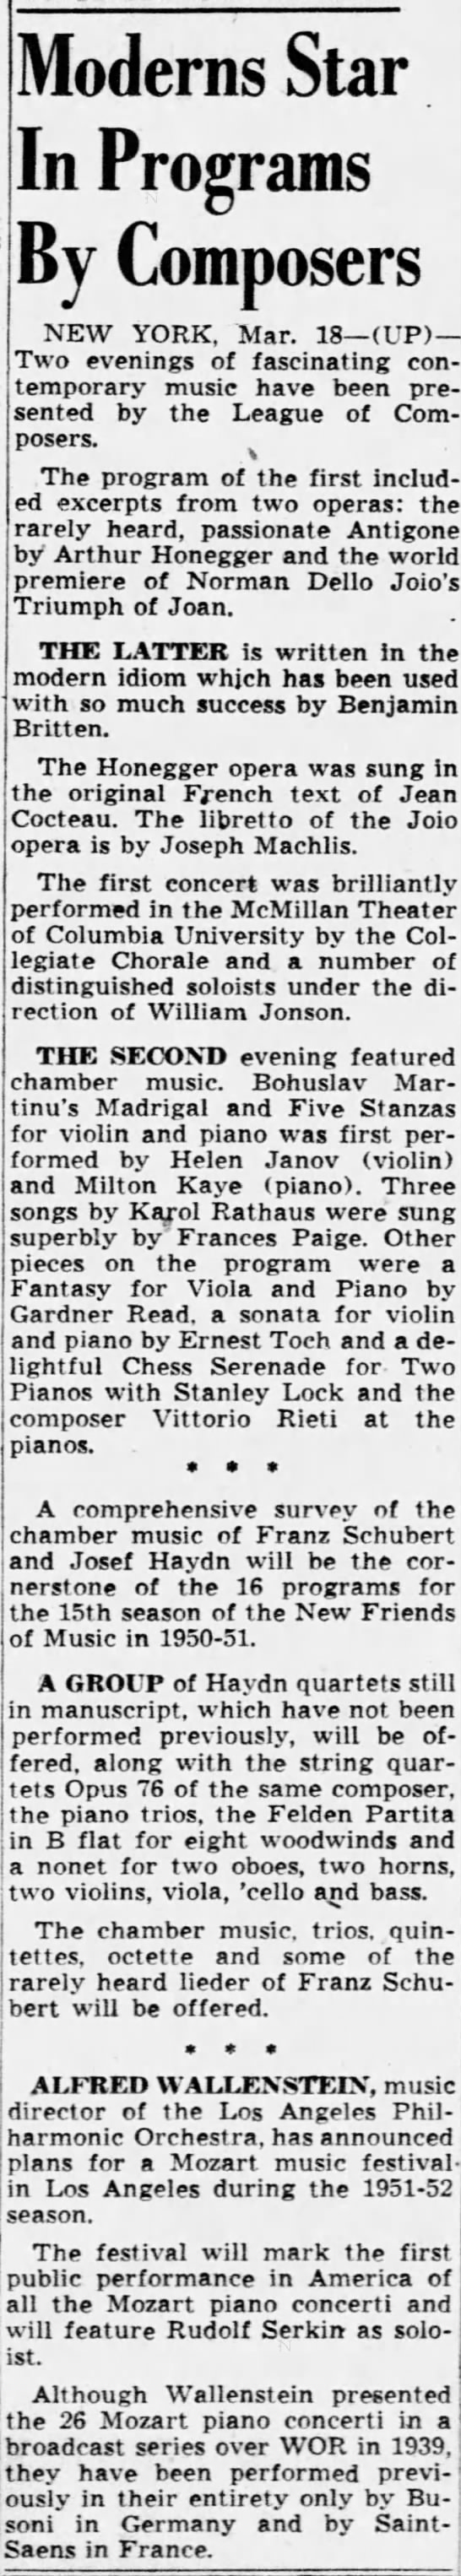 Moderns star in programs by composers 19/03/1950